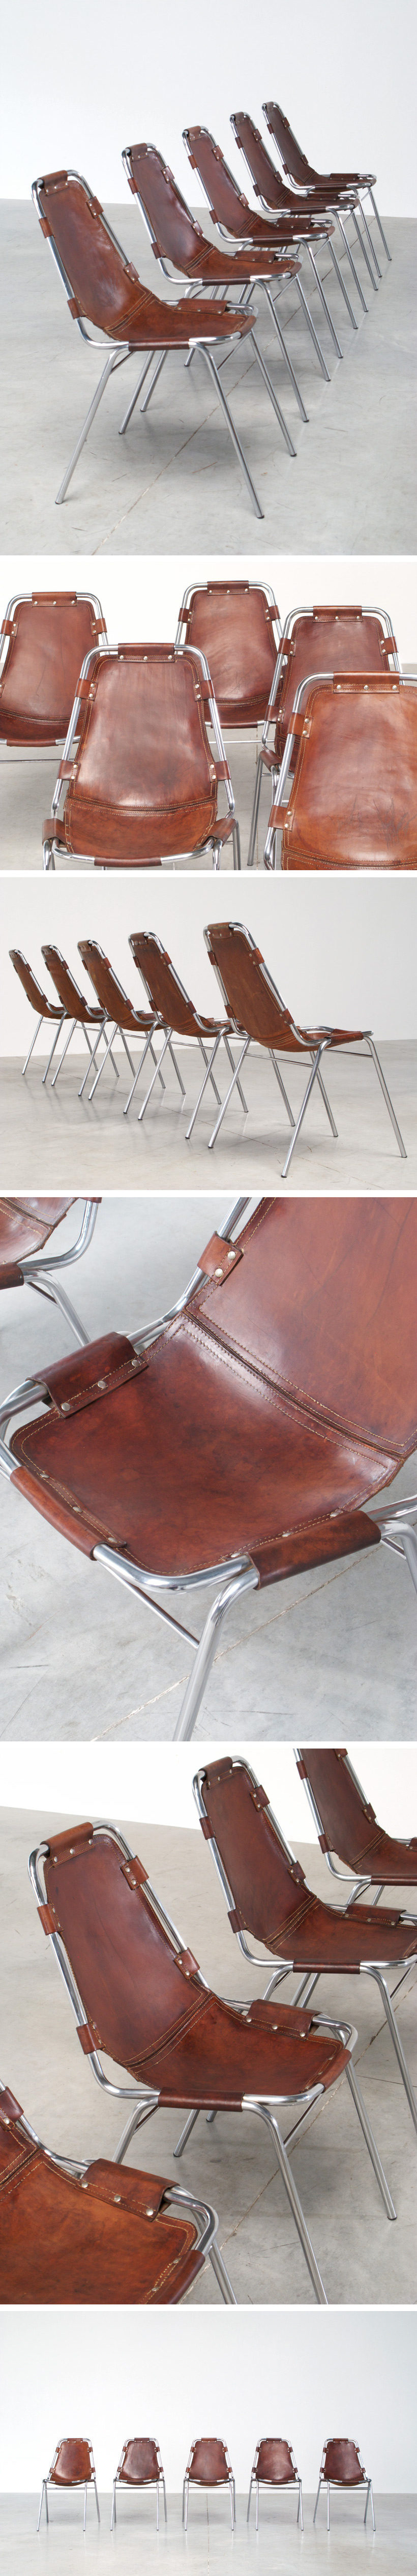 Charlotte Perriand 5 leather chairs Les Arcs Ski Resort Large